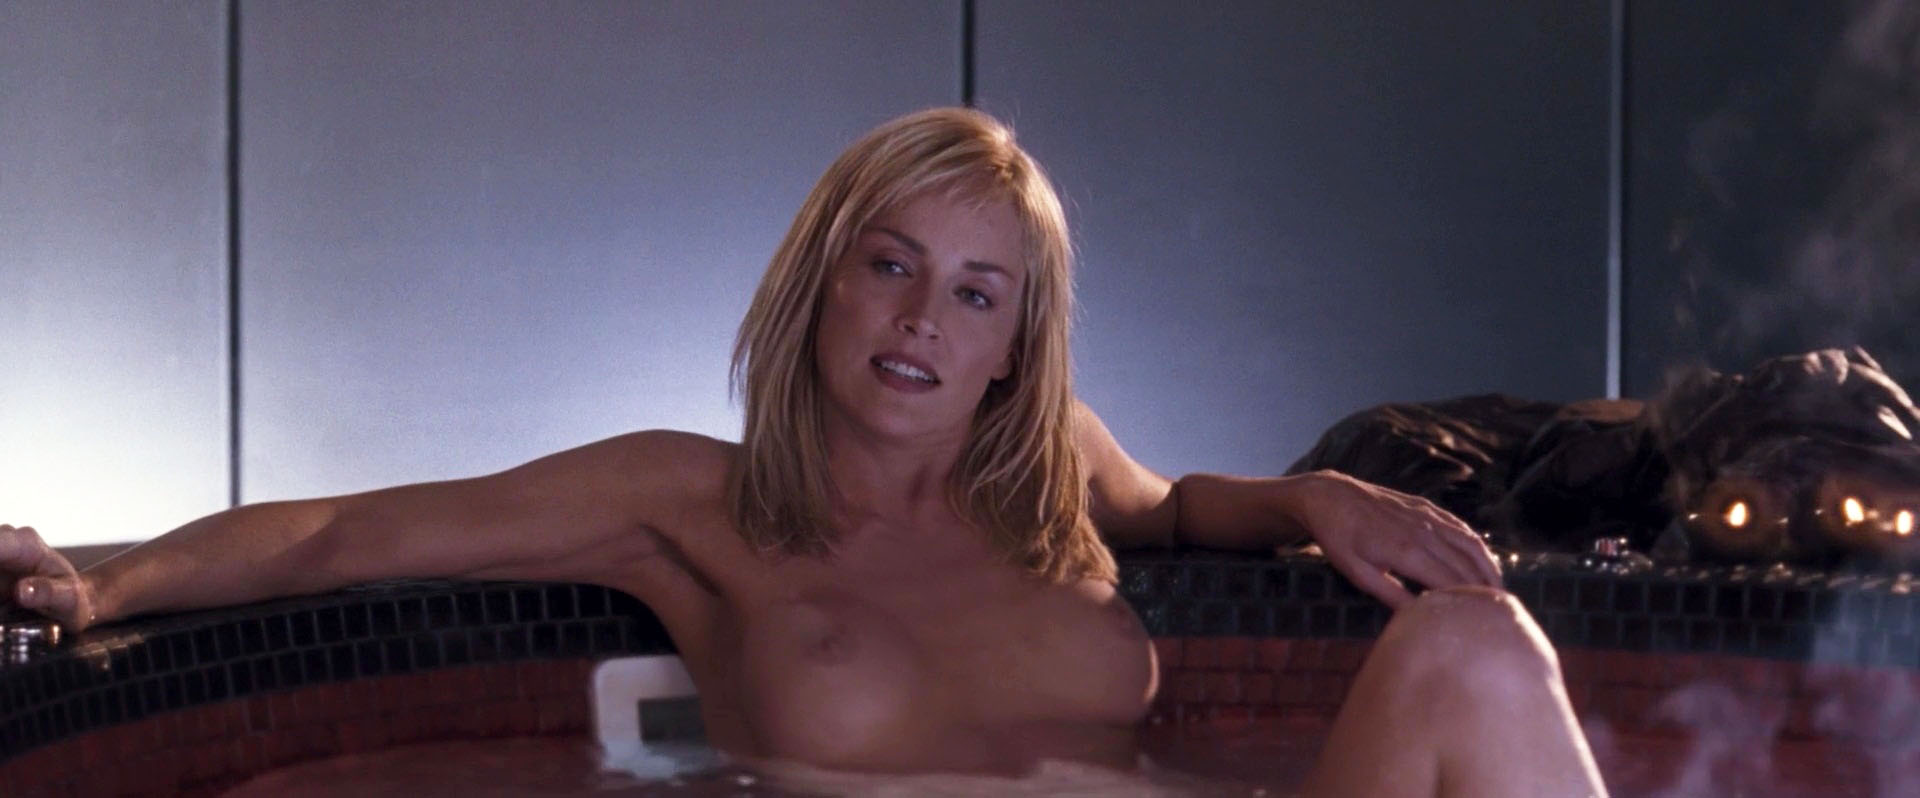 Basic instinct 2 sex scenes videos